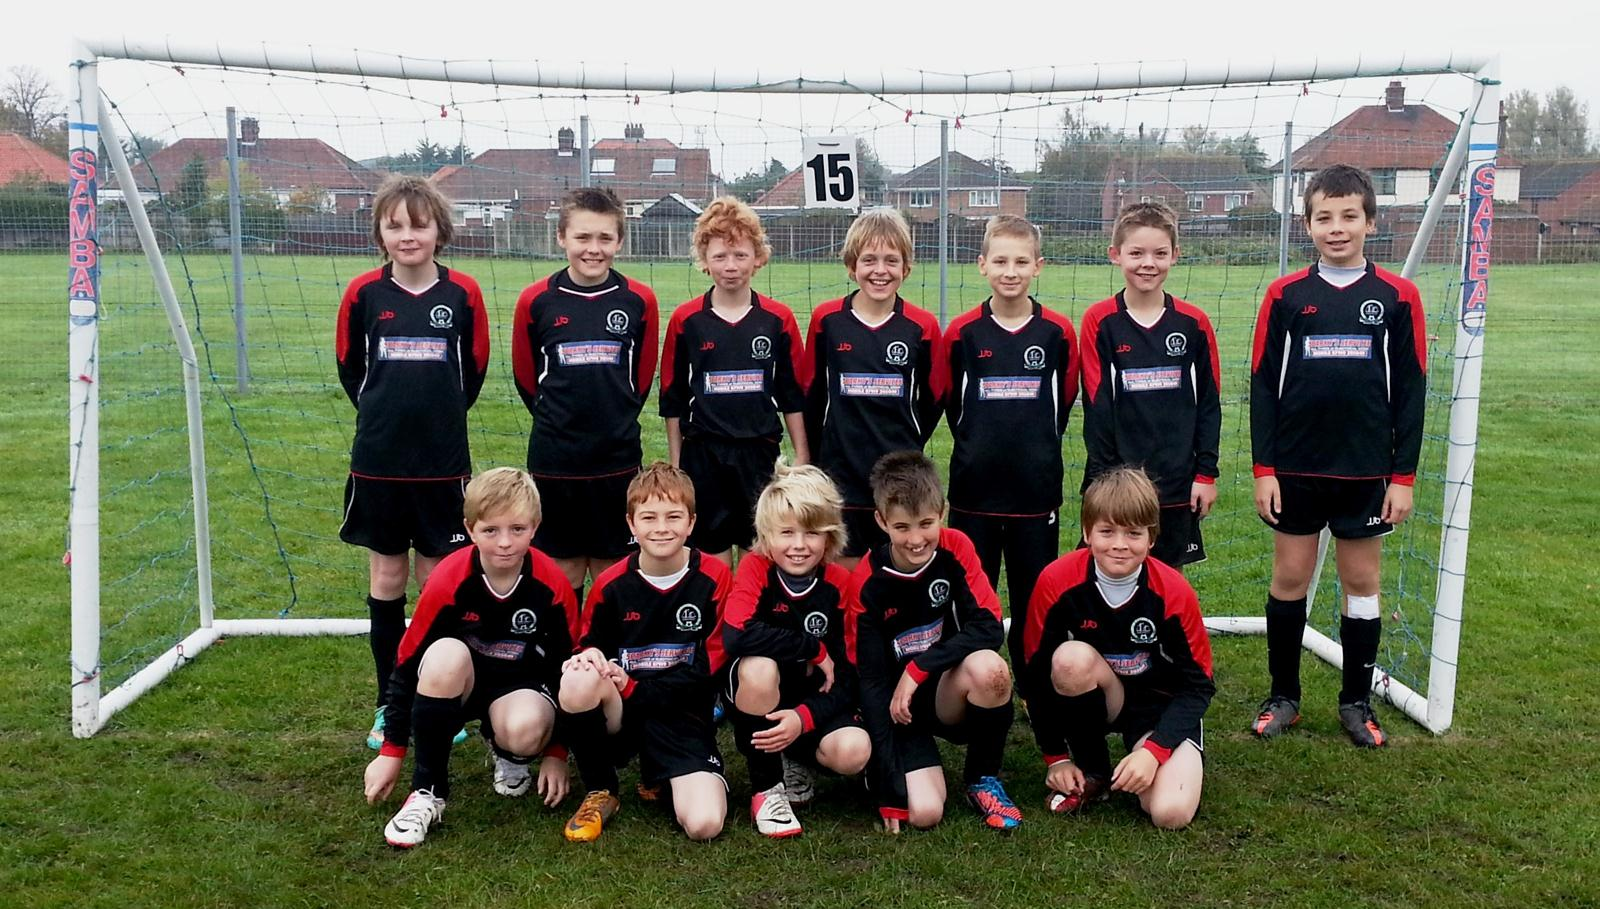 The Under 11 Falcons